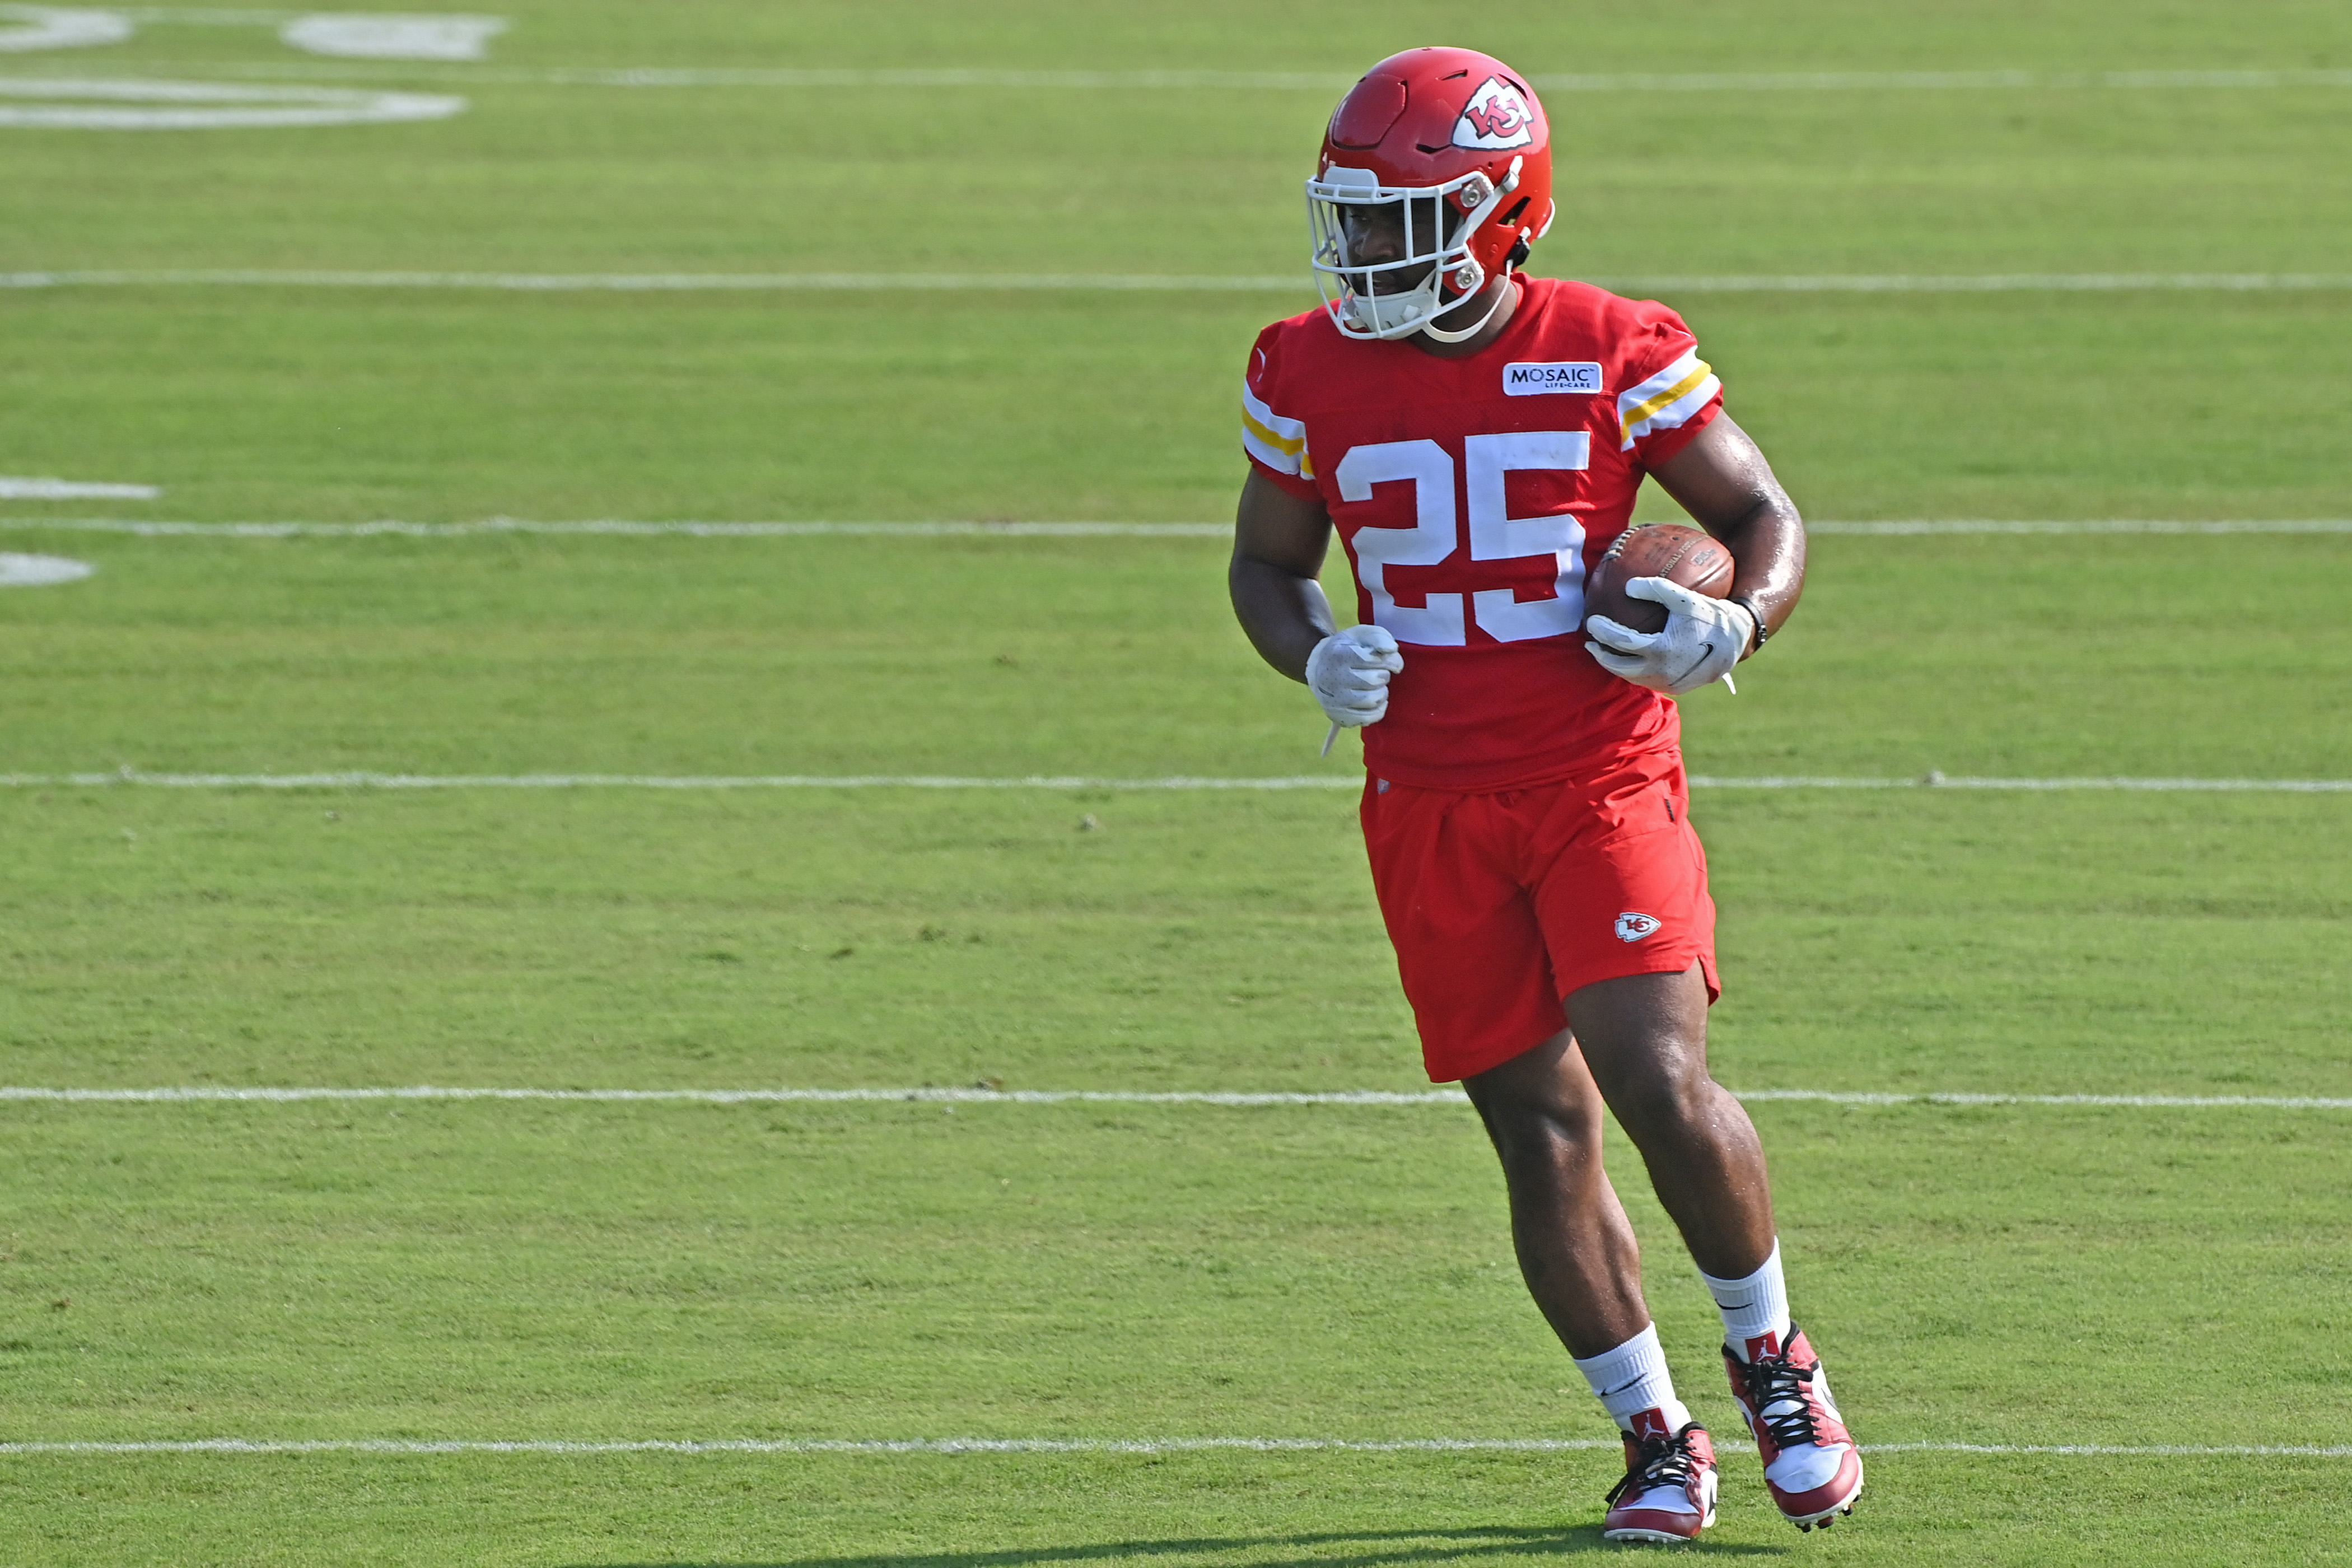 Running back Clyde Edwards-Helaire #25 of the Kansas City Chiefs runs drills during training camp at Missouri Western State University on July 28, 2021 in St Joseph, Missouri.